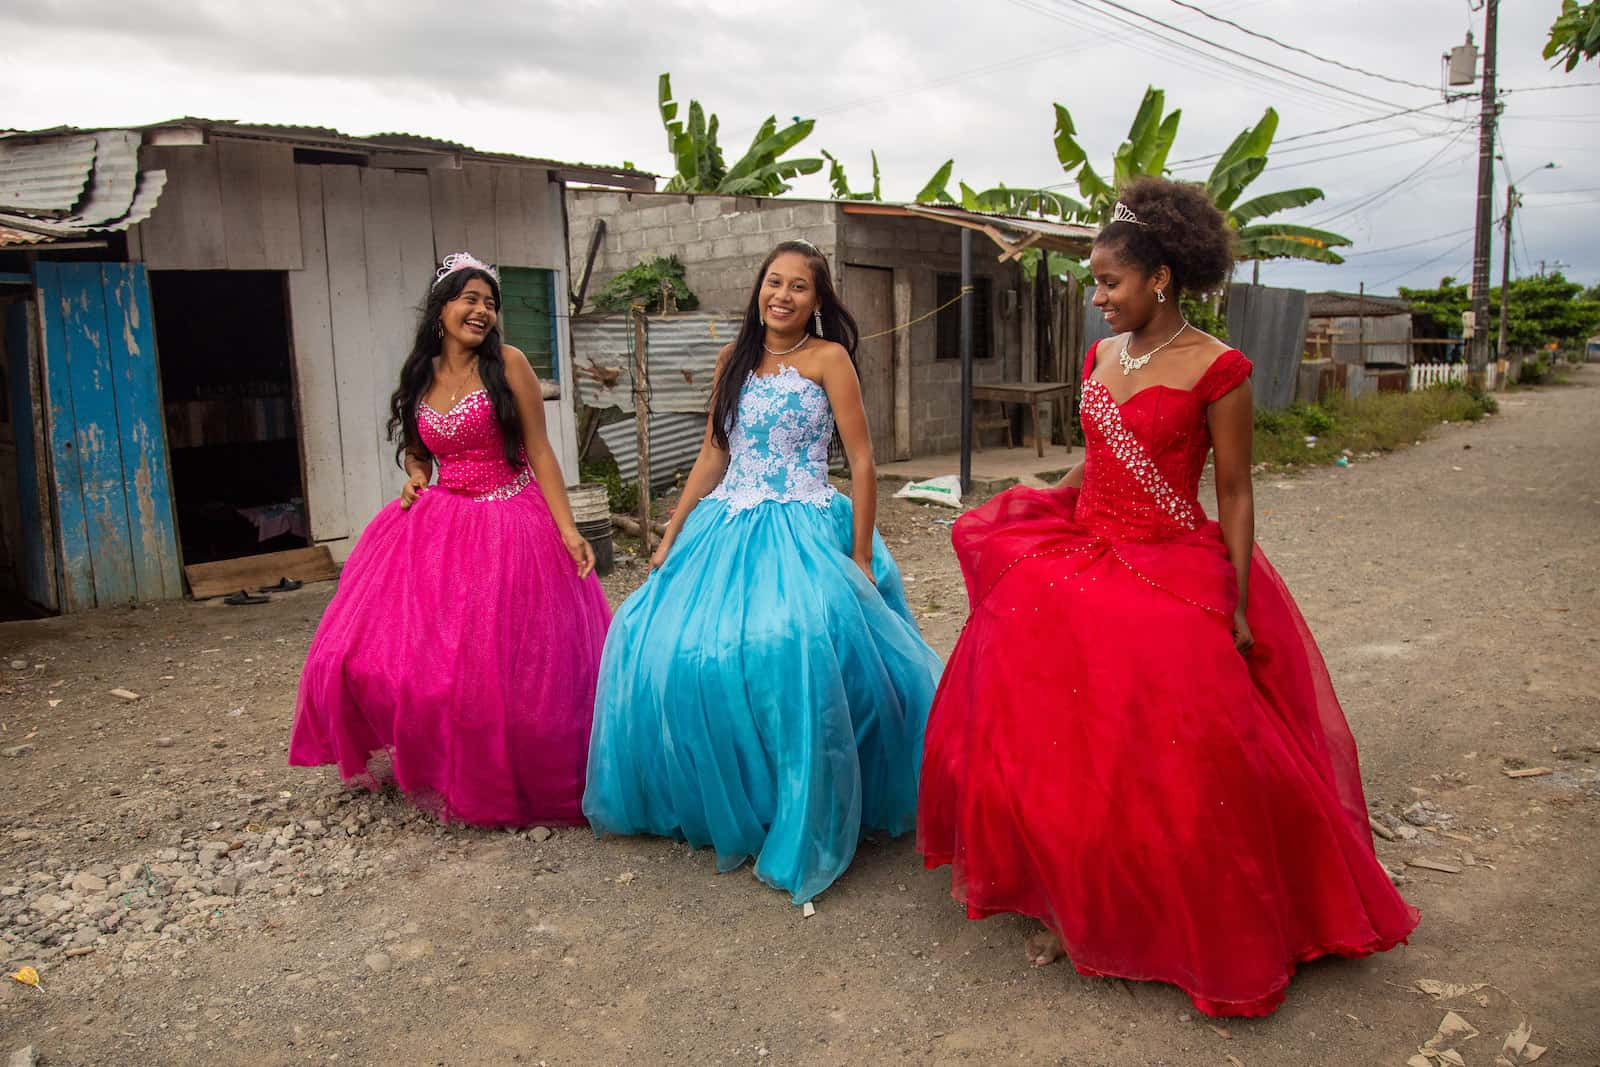 Three girls in formal wear walk down a dirt road.